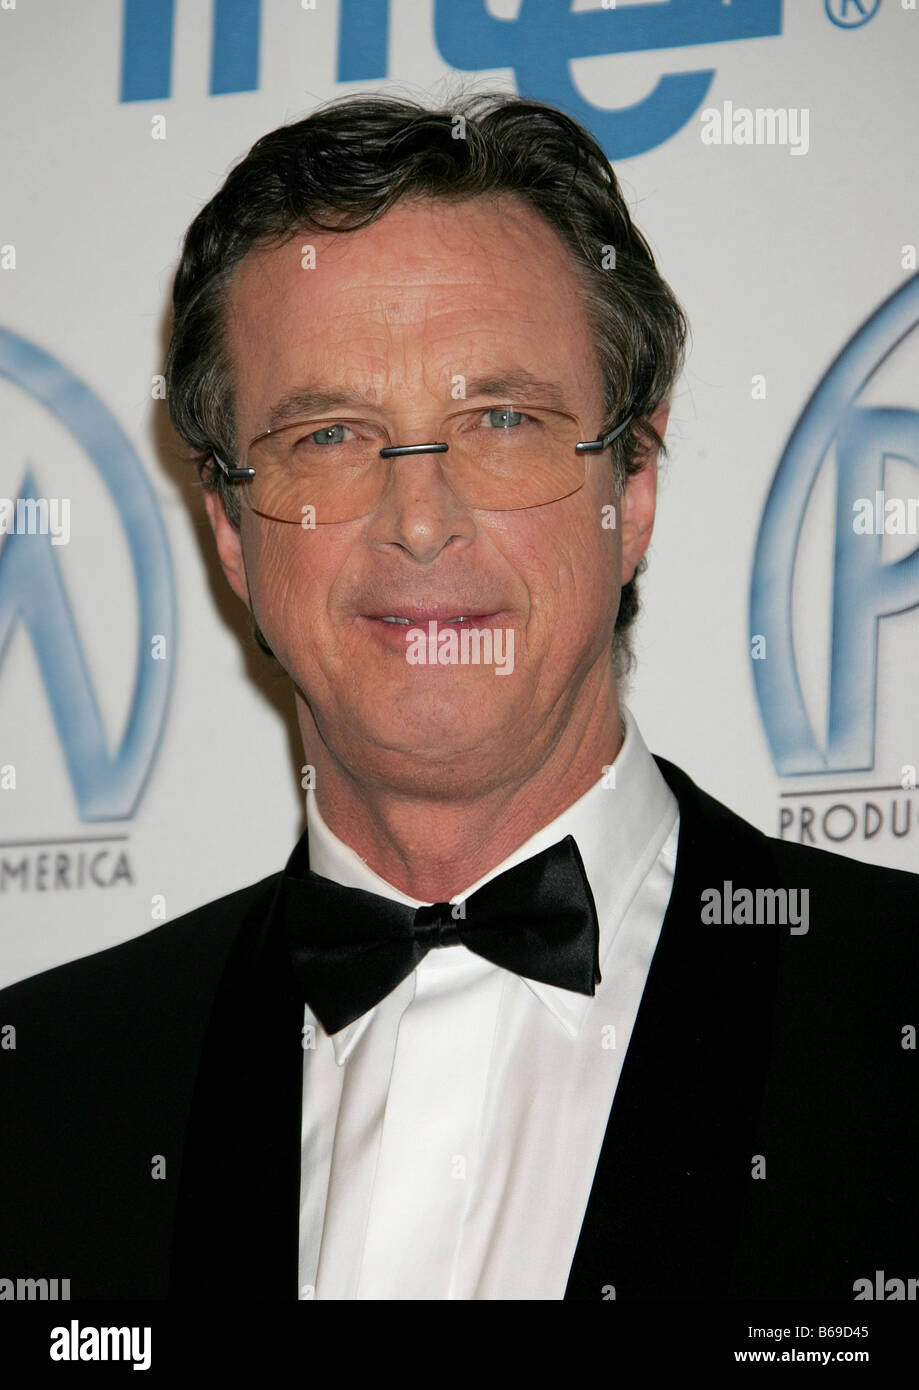 Nous Michael Crichton auteur de science-fiction et directeur de film en 2005 Photo Stock